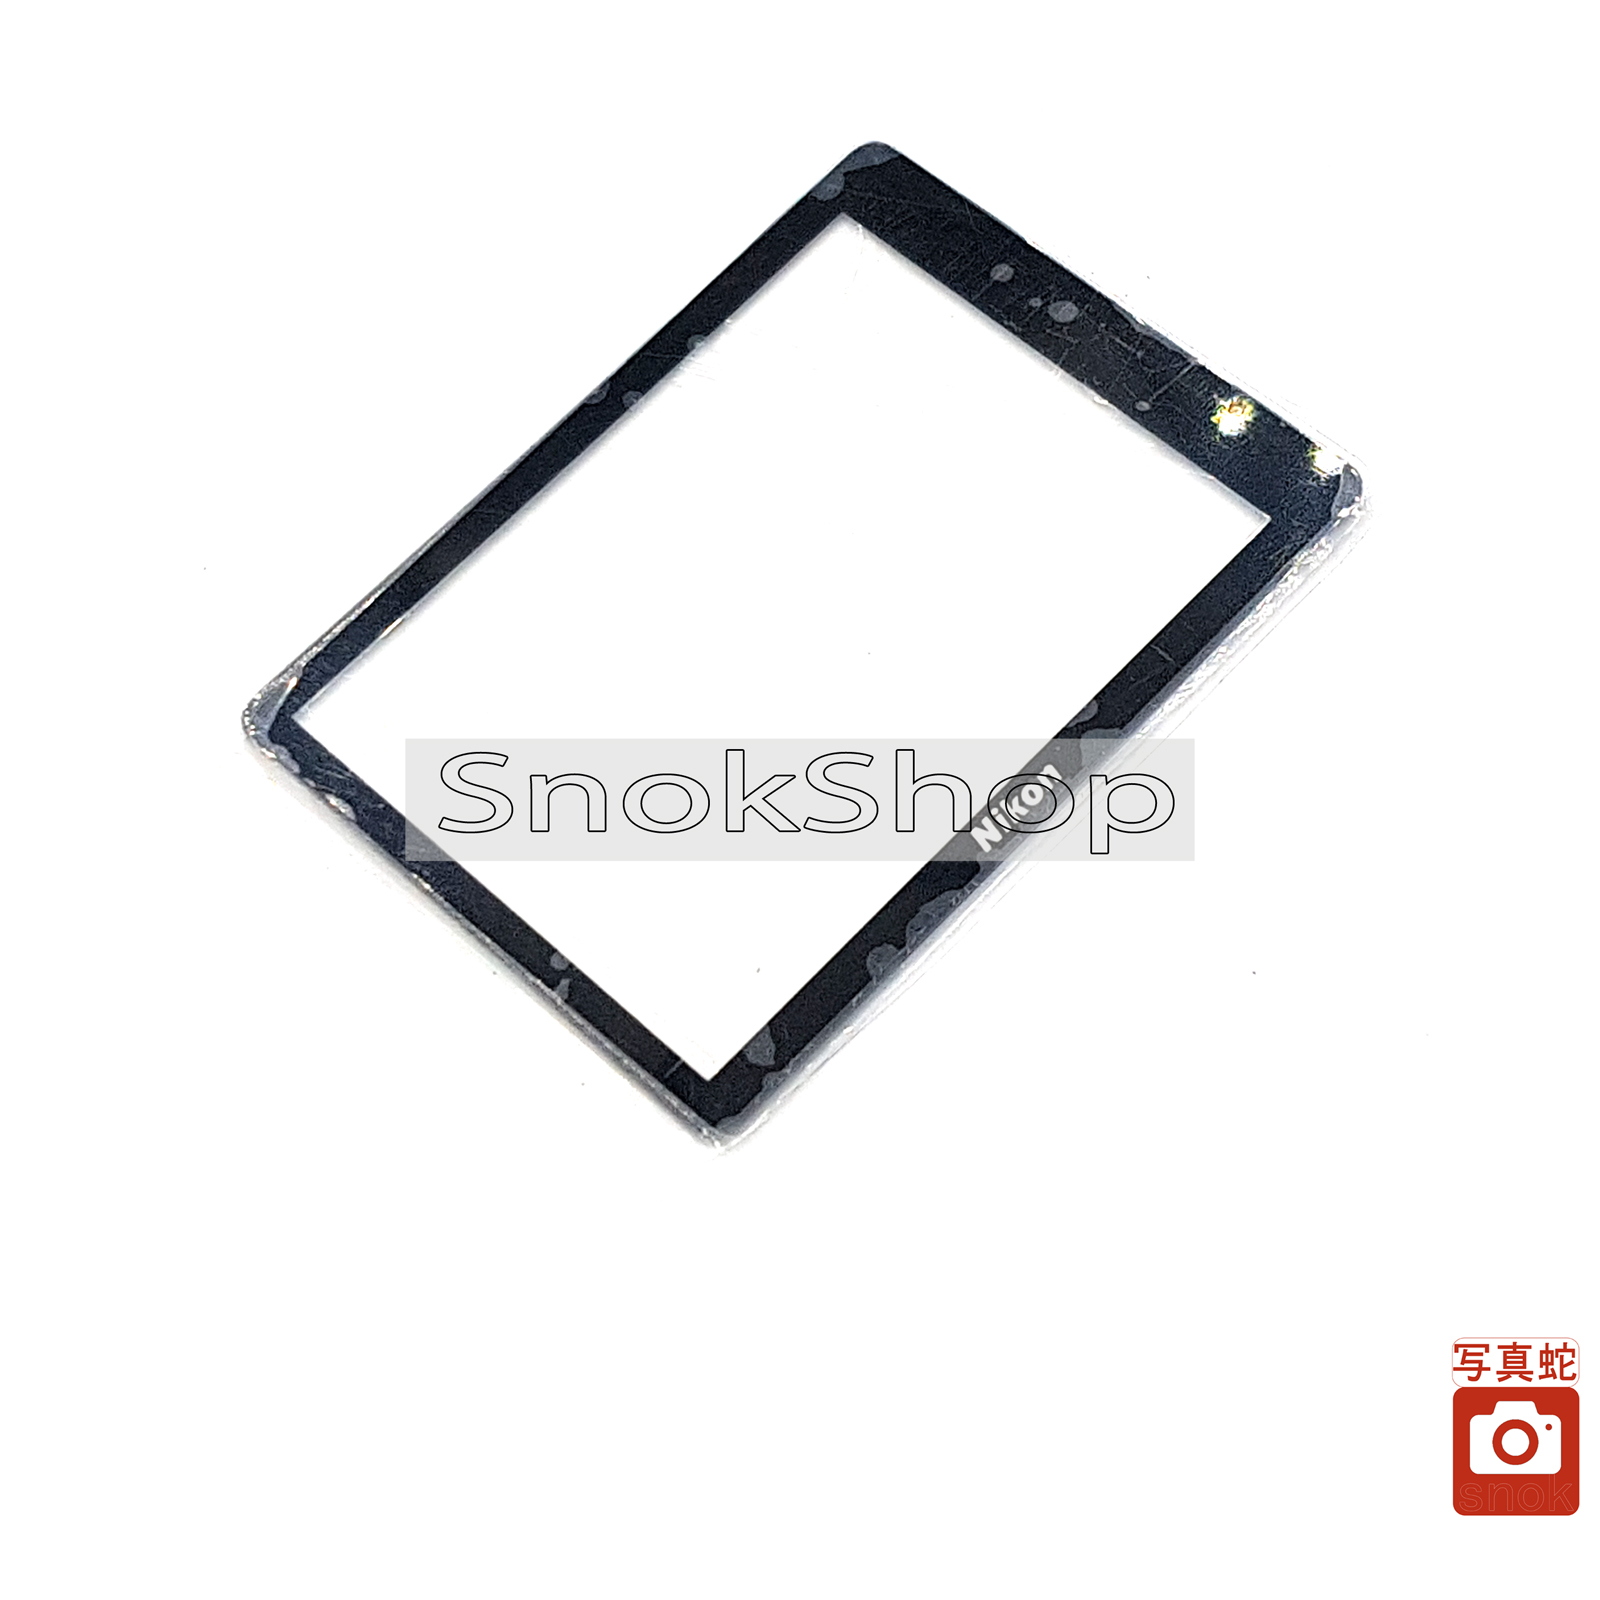 Recambios y herramientas WINDOW DISPLAY OUTER GLASS FOR lcd